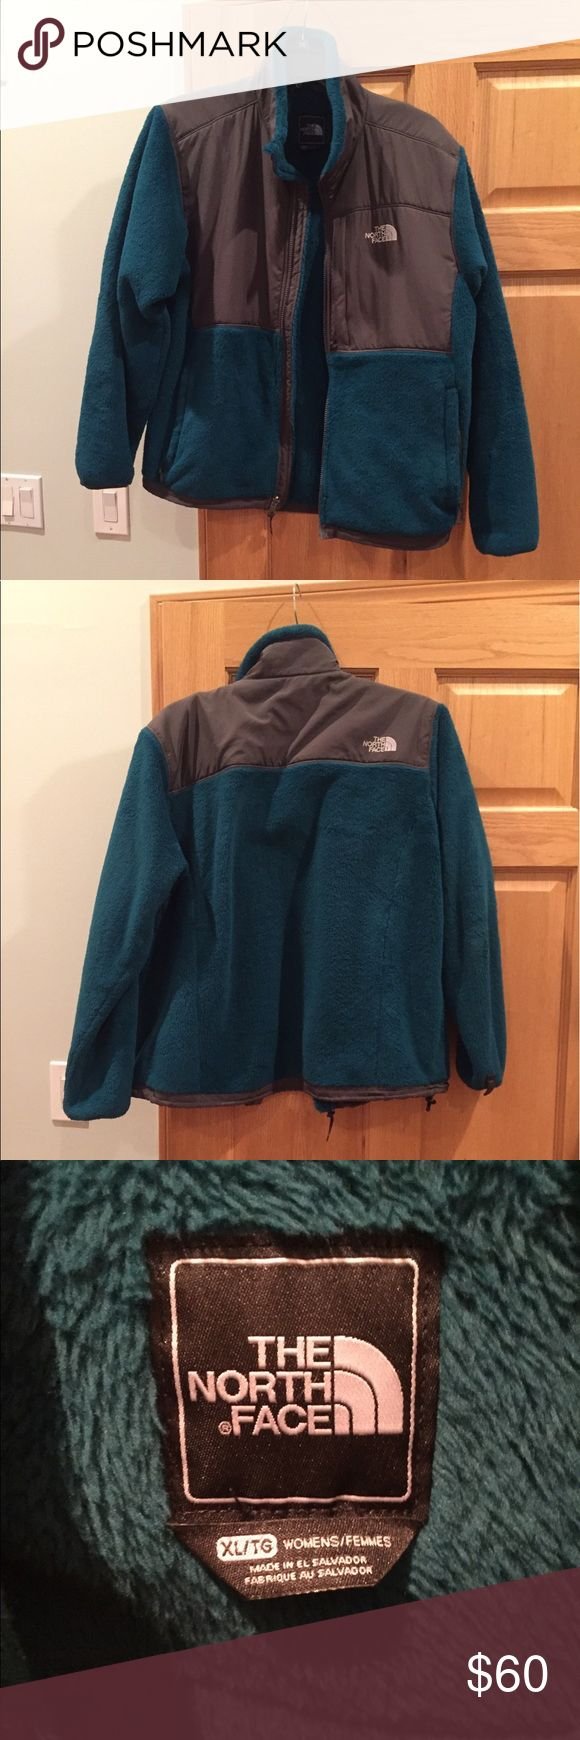 North Face Teal Fuzzy Ladies Jacket XL In good condition, open to offers North Face Jackets & Coats